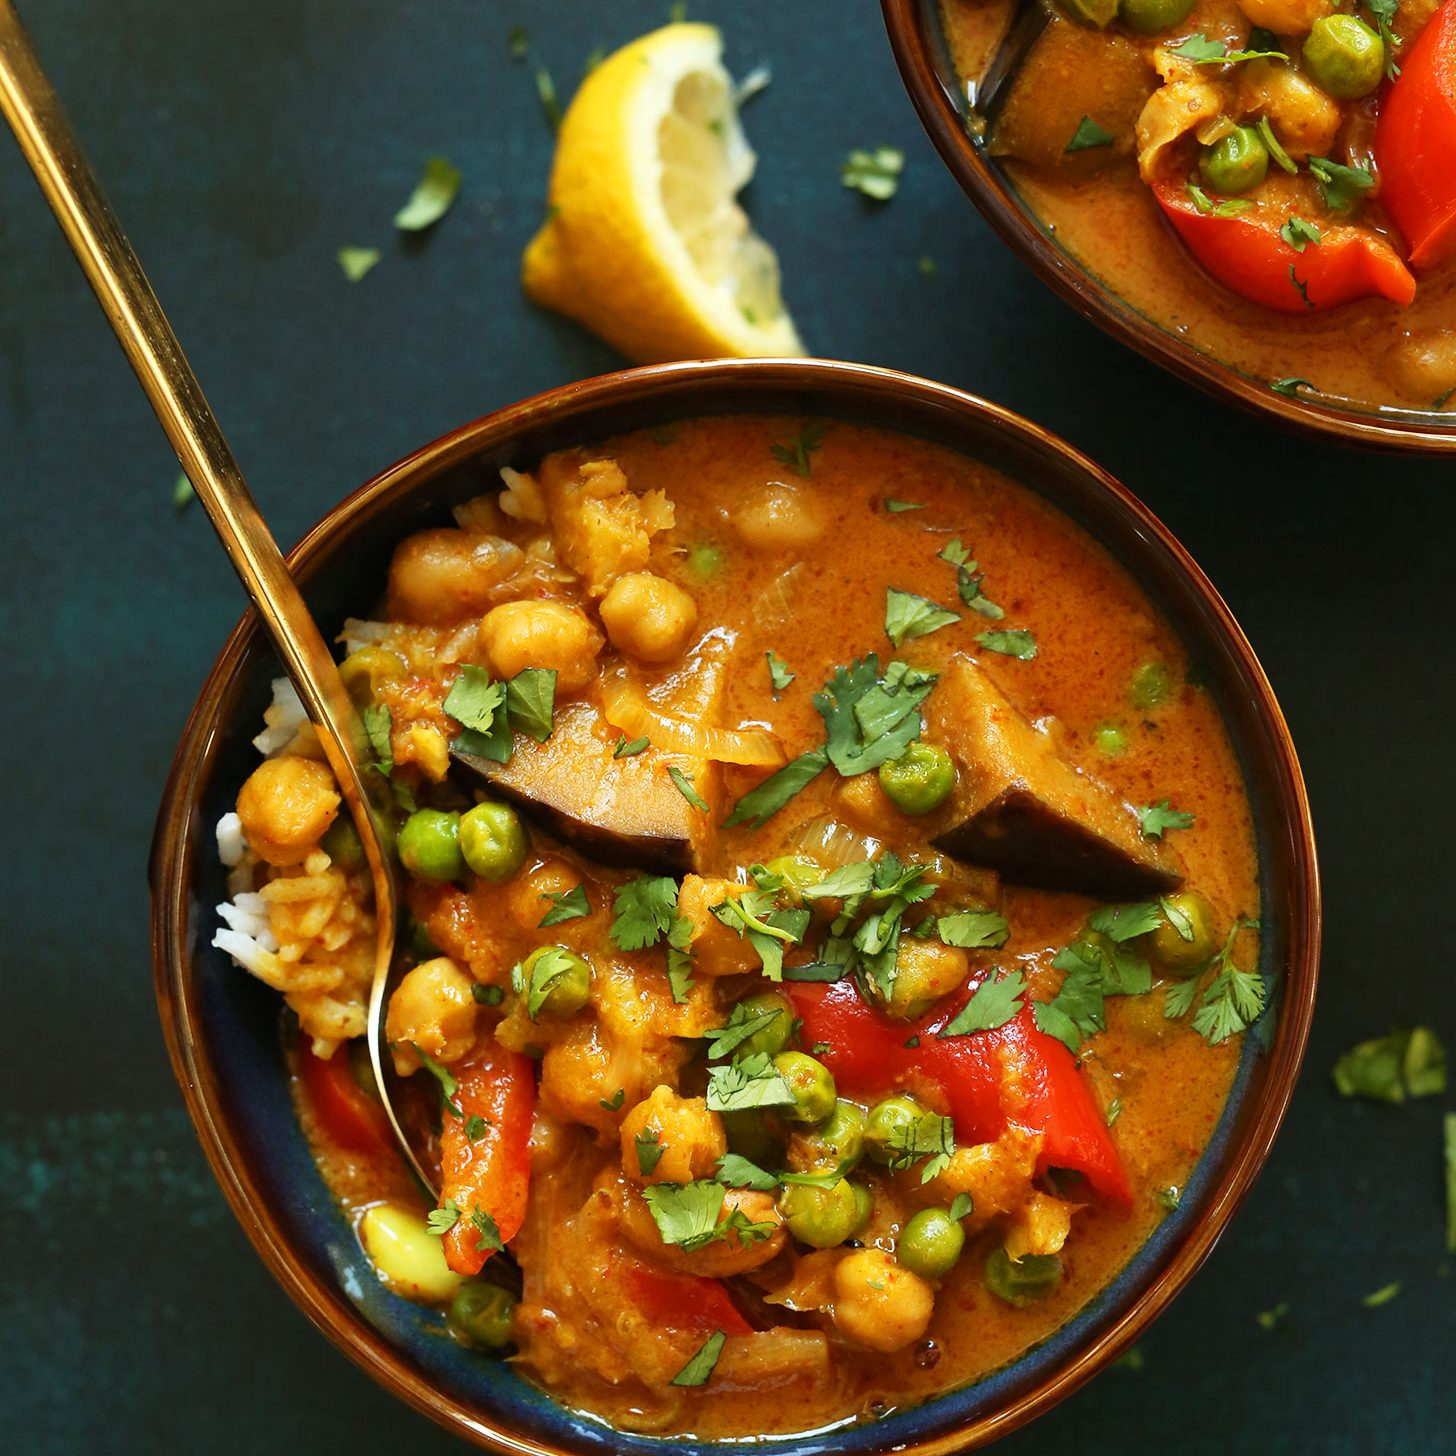 RED-Vegetable-Coconut-Curry-with-Chickpeas-1-pot-simple-SO-flavorful-vegan-glutenfree-plantbased-curry-recipe-chickpeas